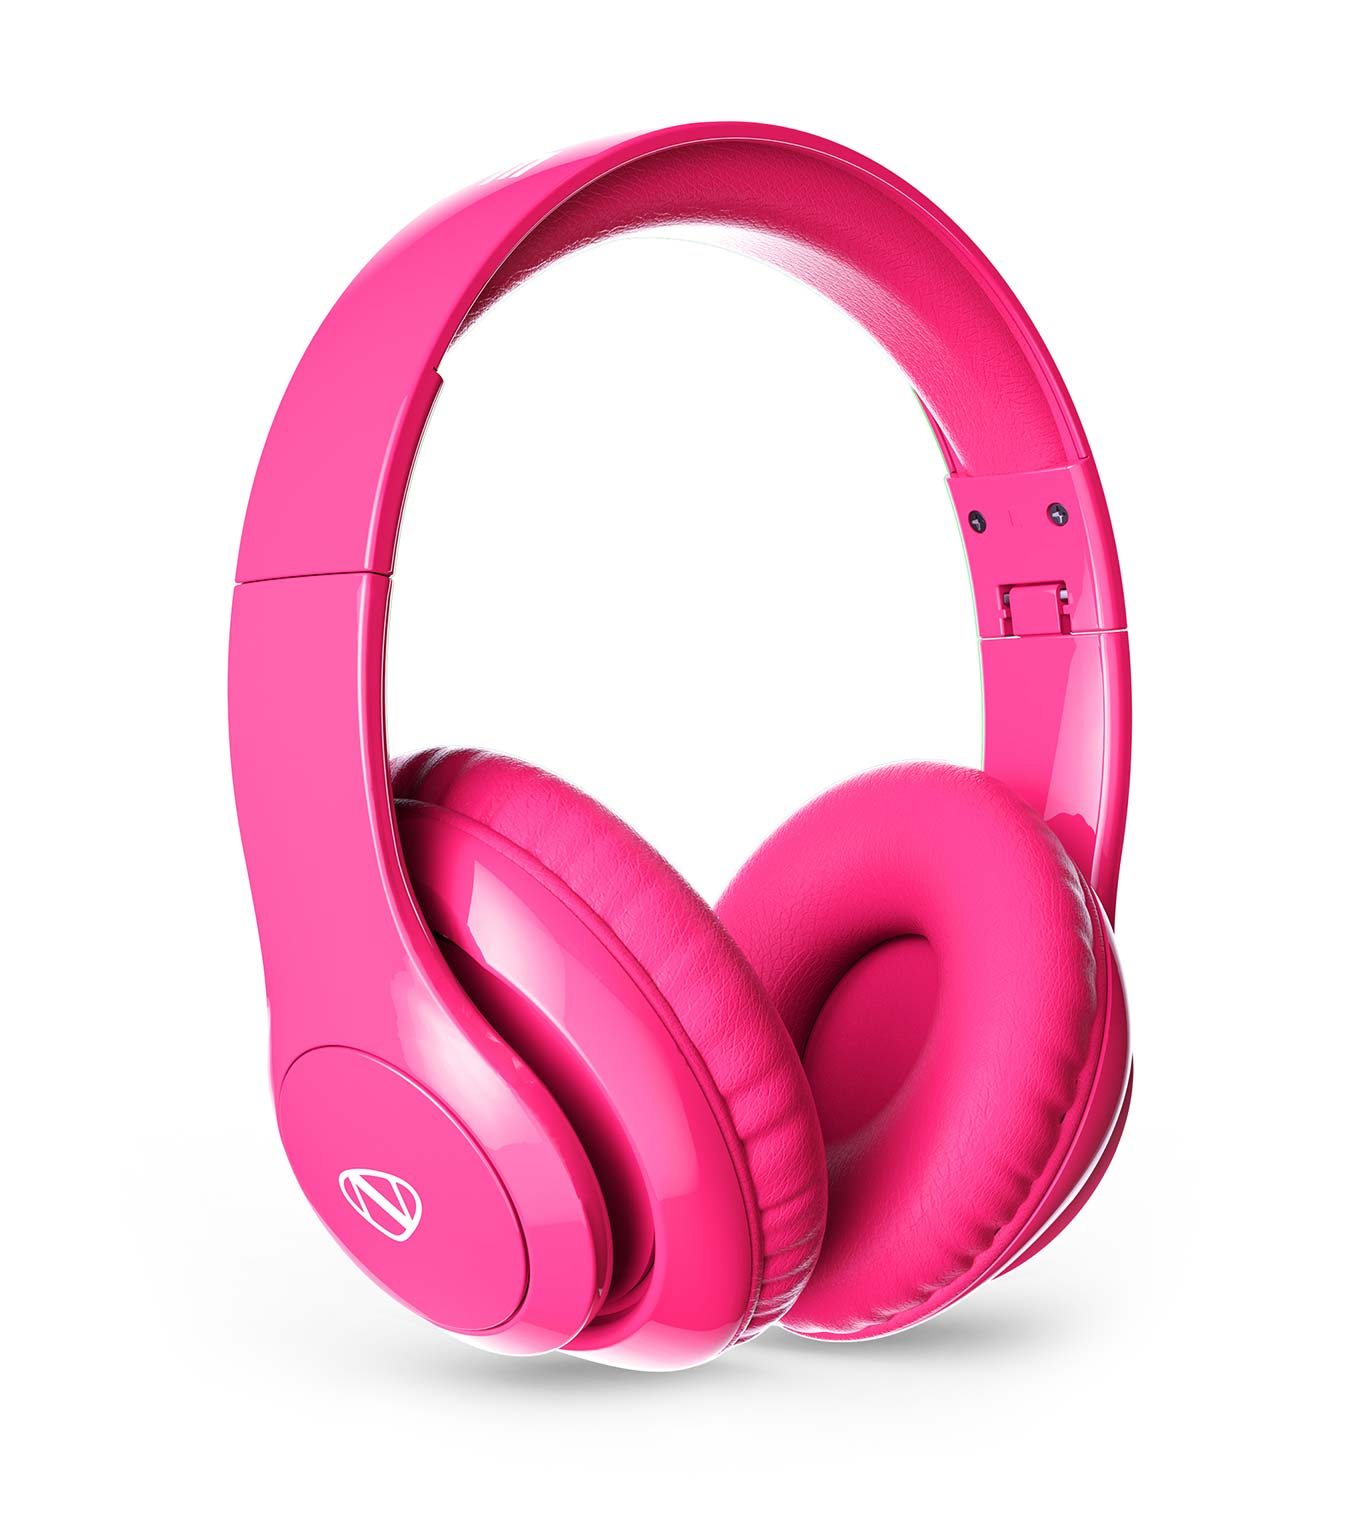 43625556616 NCredible1 Neon